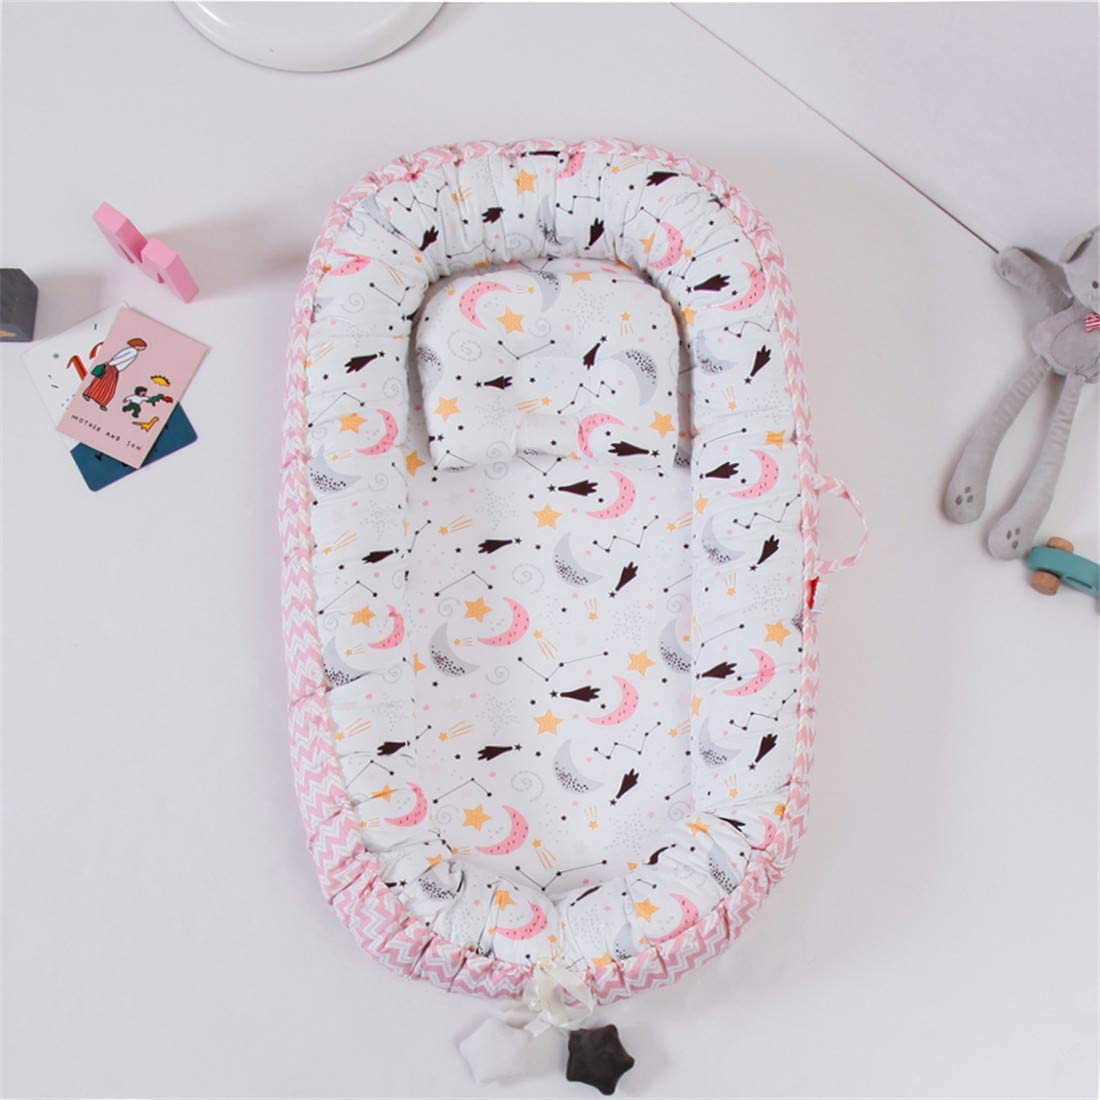 USTIDE Baby Bassinet Co-Sleeping Baby Bassinet Soft Comfortable Baby Pod Cot Skin-Friendly Baby Nest Pink Cloud Print Newborn Girls Baby Bed 2 Pieces